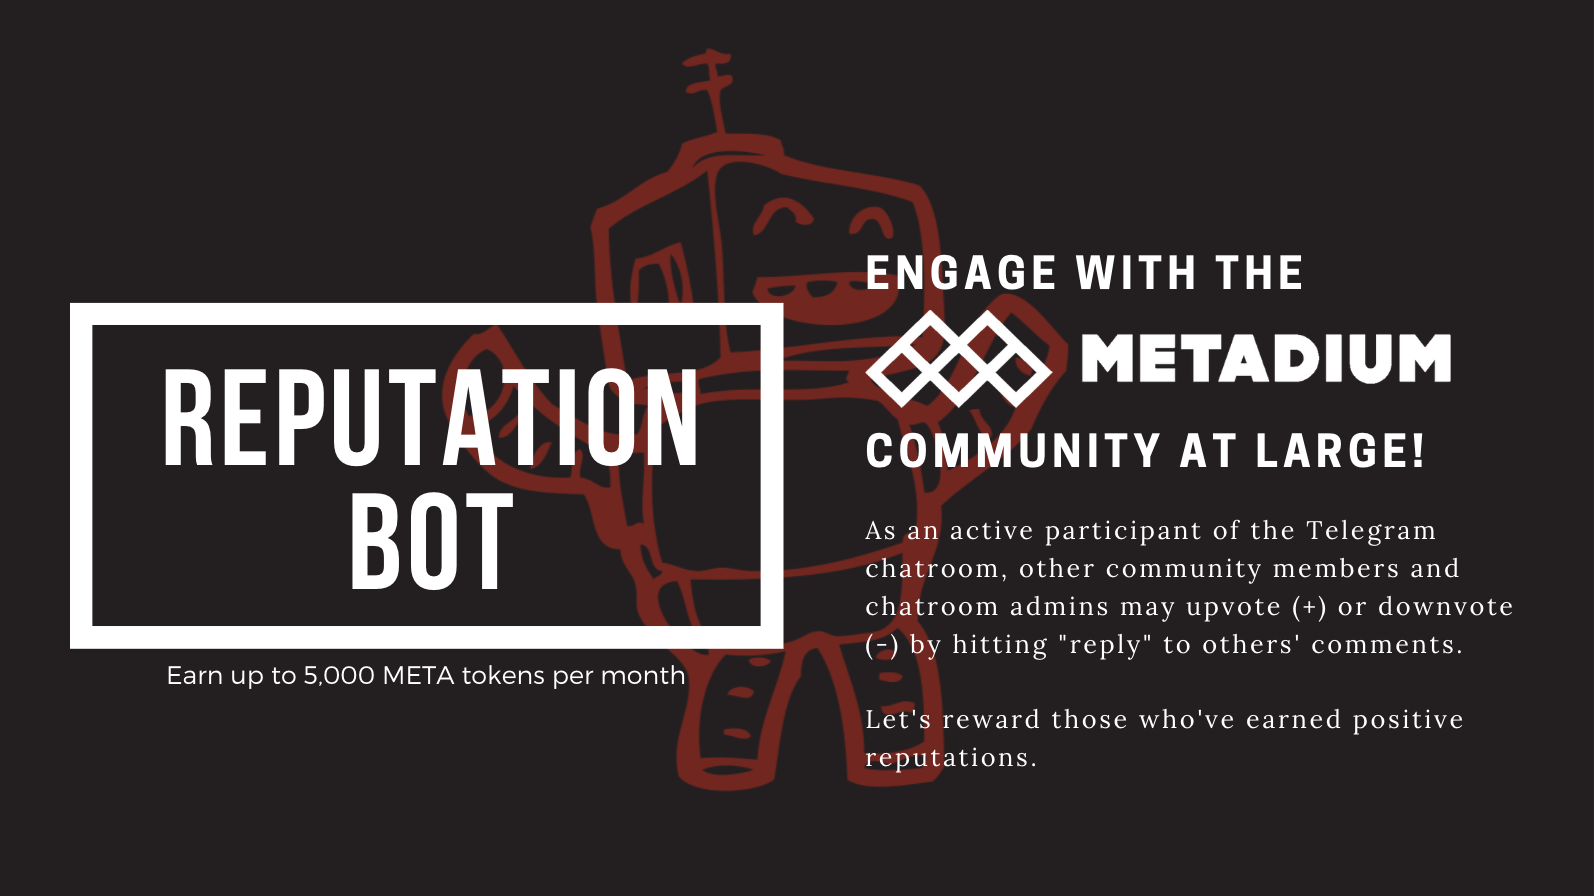 To Make Sure Active Community Members Stay Updated And En Ed With Metadium Weve Provided Two Ways For Metadians To Earn Meta Tokens For The Remainder Of